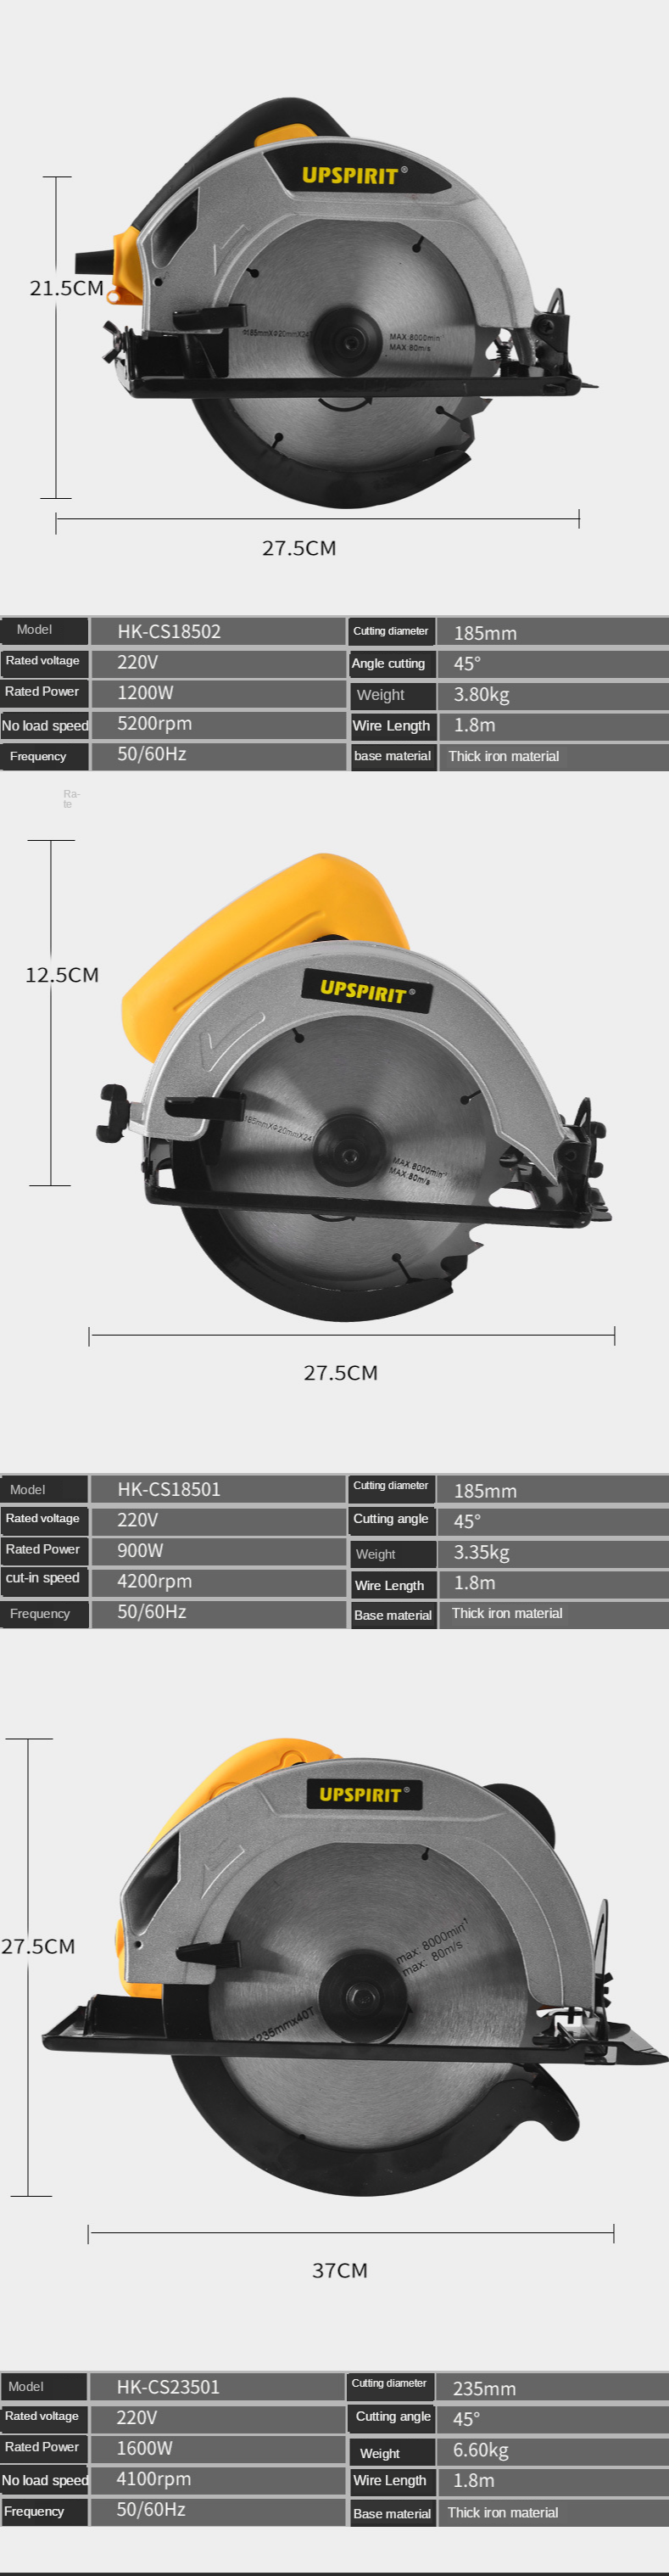 H1249938dce0f44f88a465bd652c172353 - LIVTER HK-CS23501 9 inch High finish cutting surface wood saw  machine for wood ripping